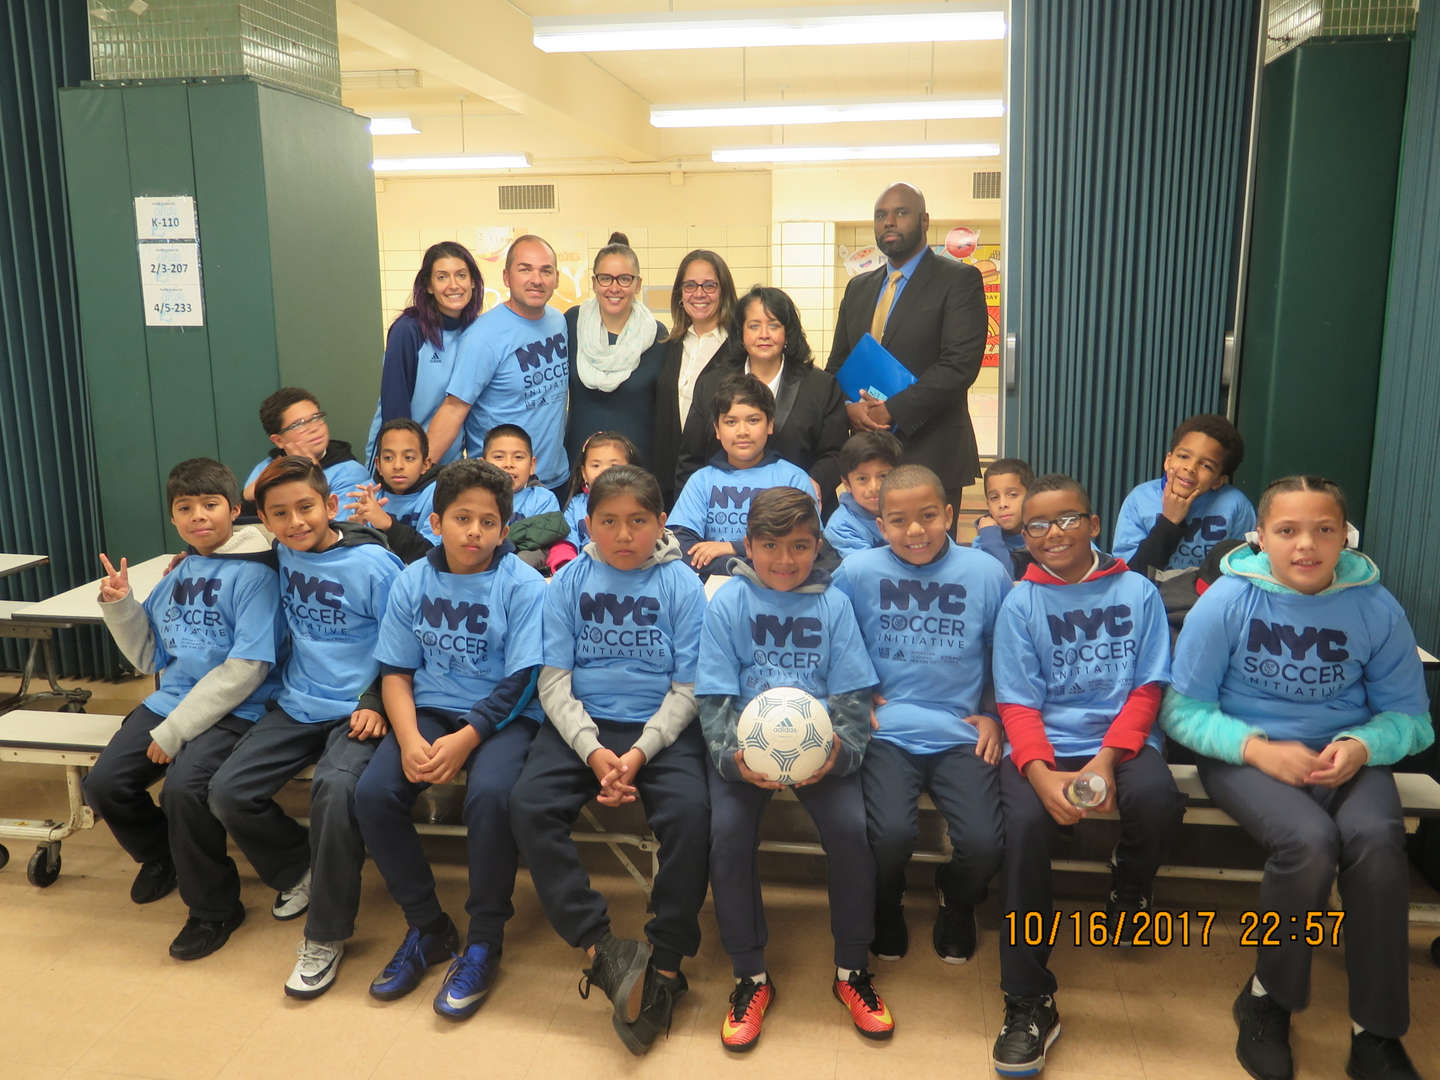 The PS83M soccer team